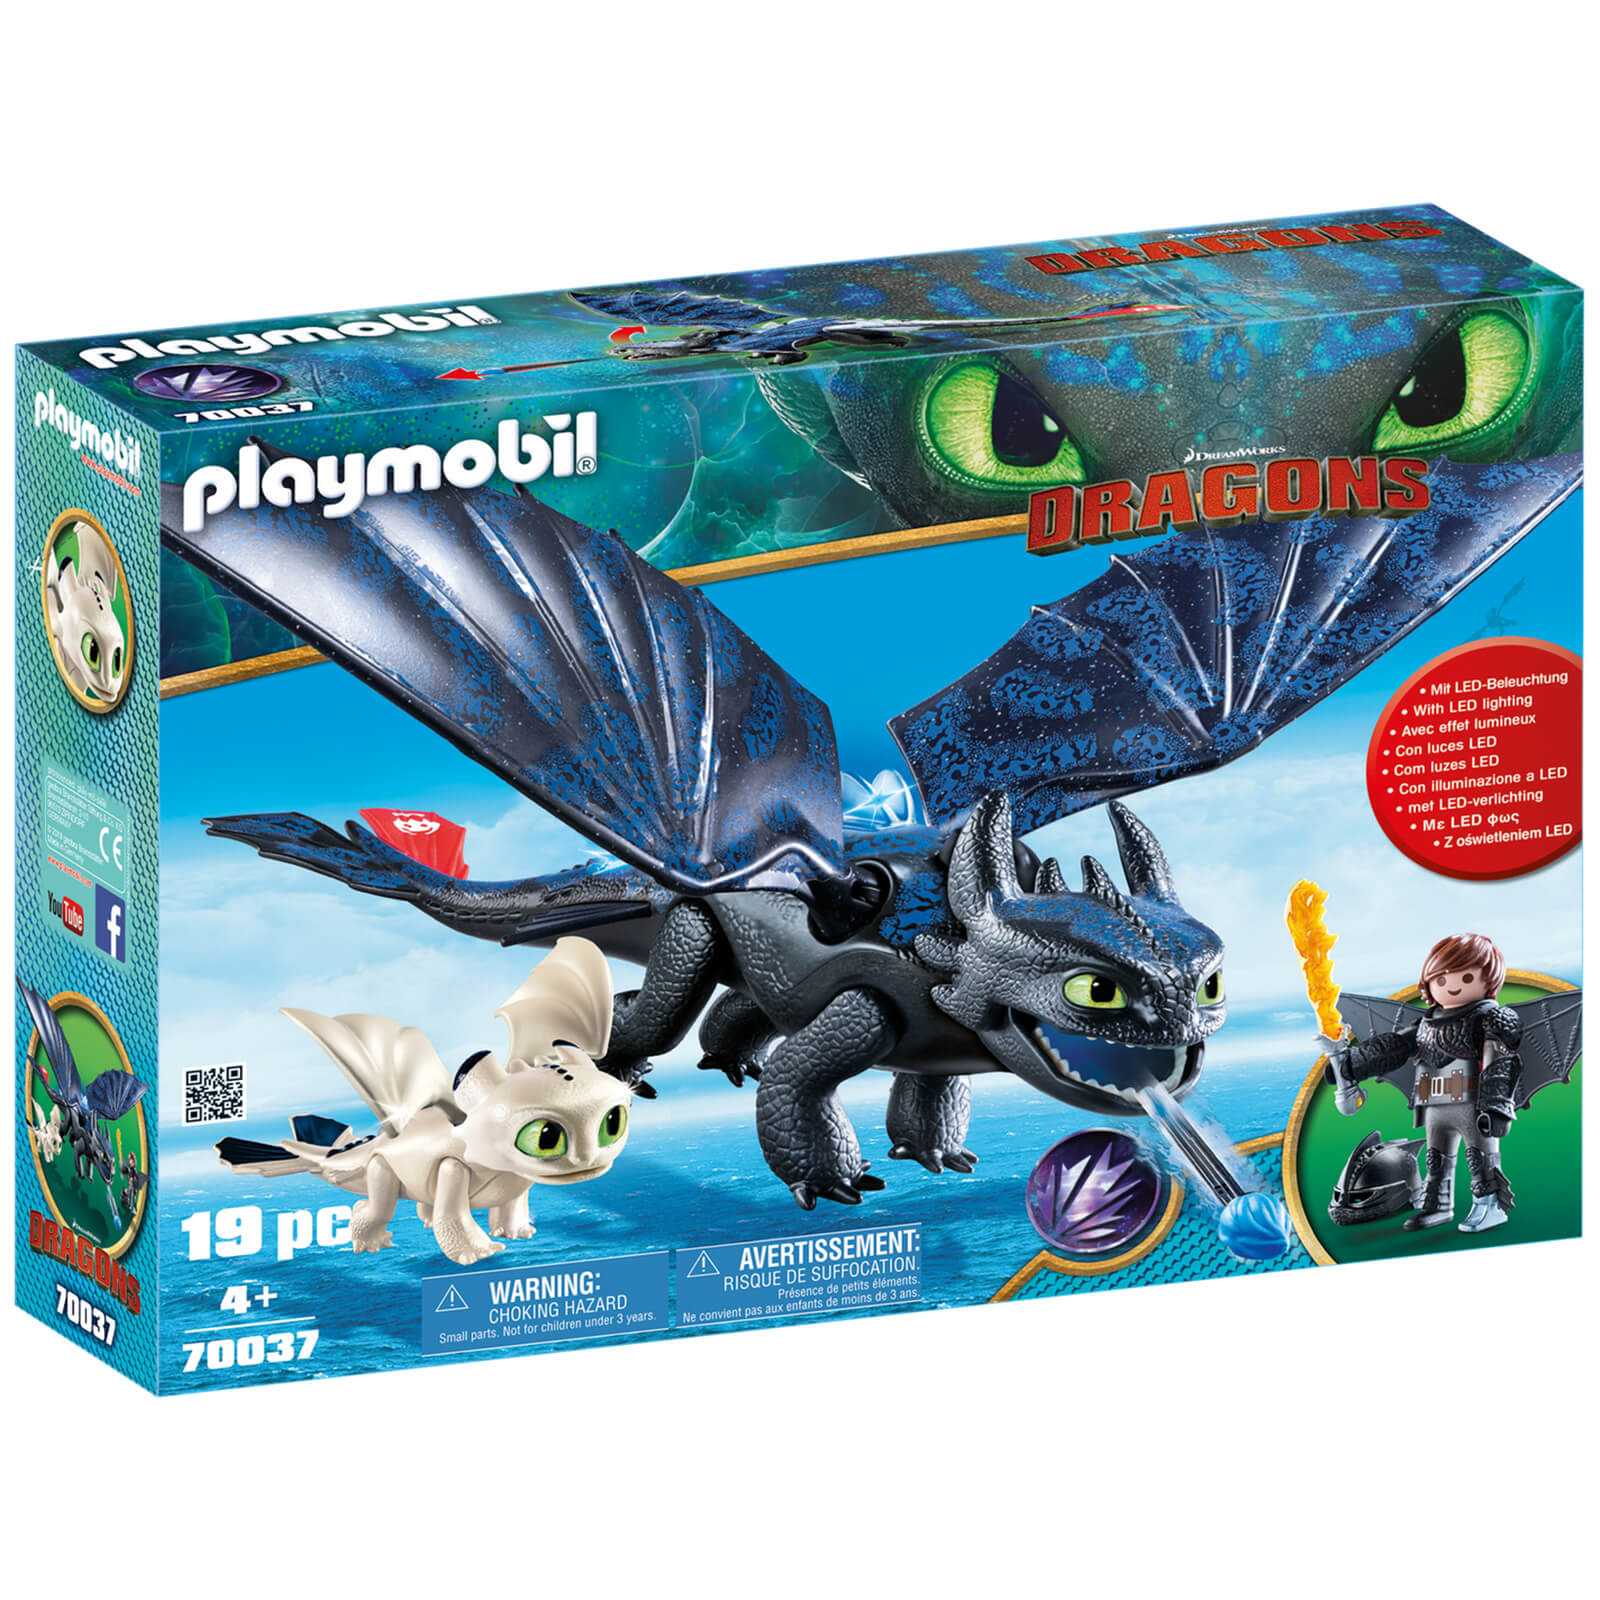 Image of Playmobil DreamWorks Dragons Hiccup and Toothless with Baby Dragon (70037)